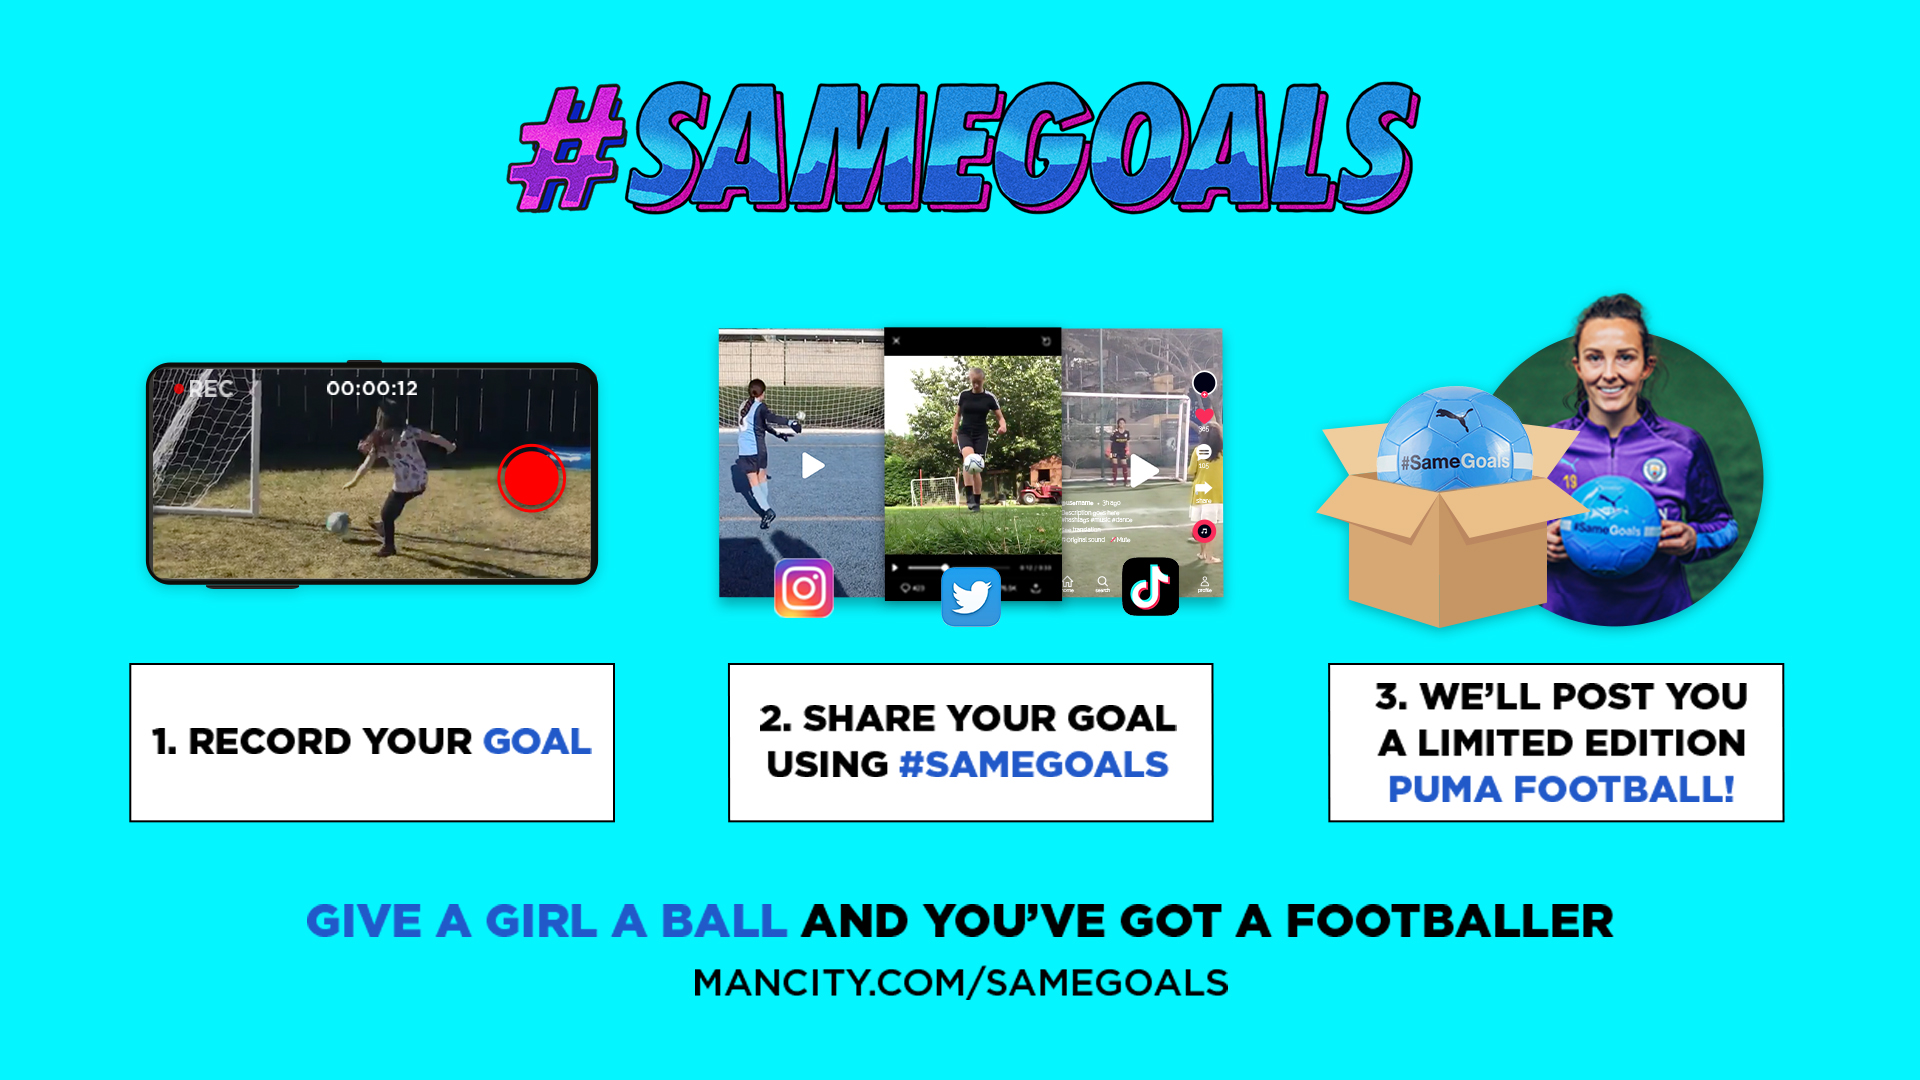 #SameGoals: 'Football is for everyone!'